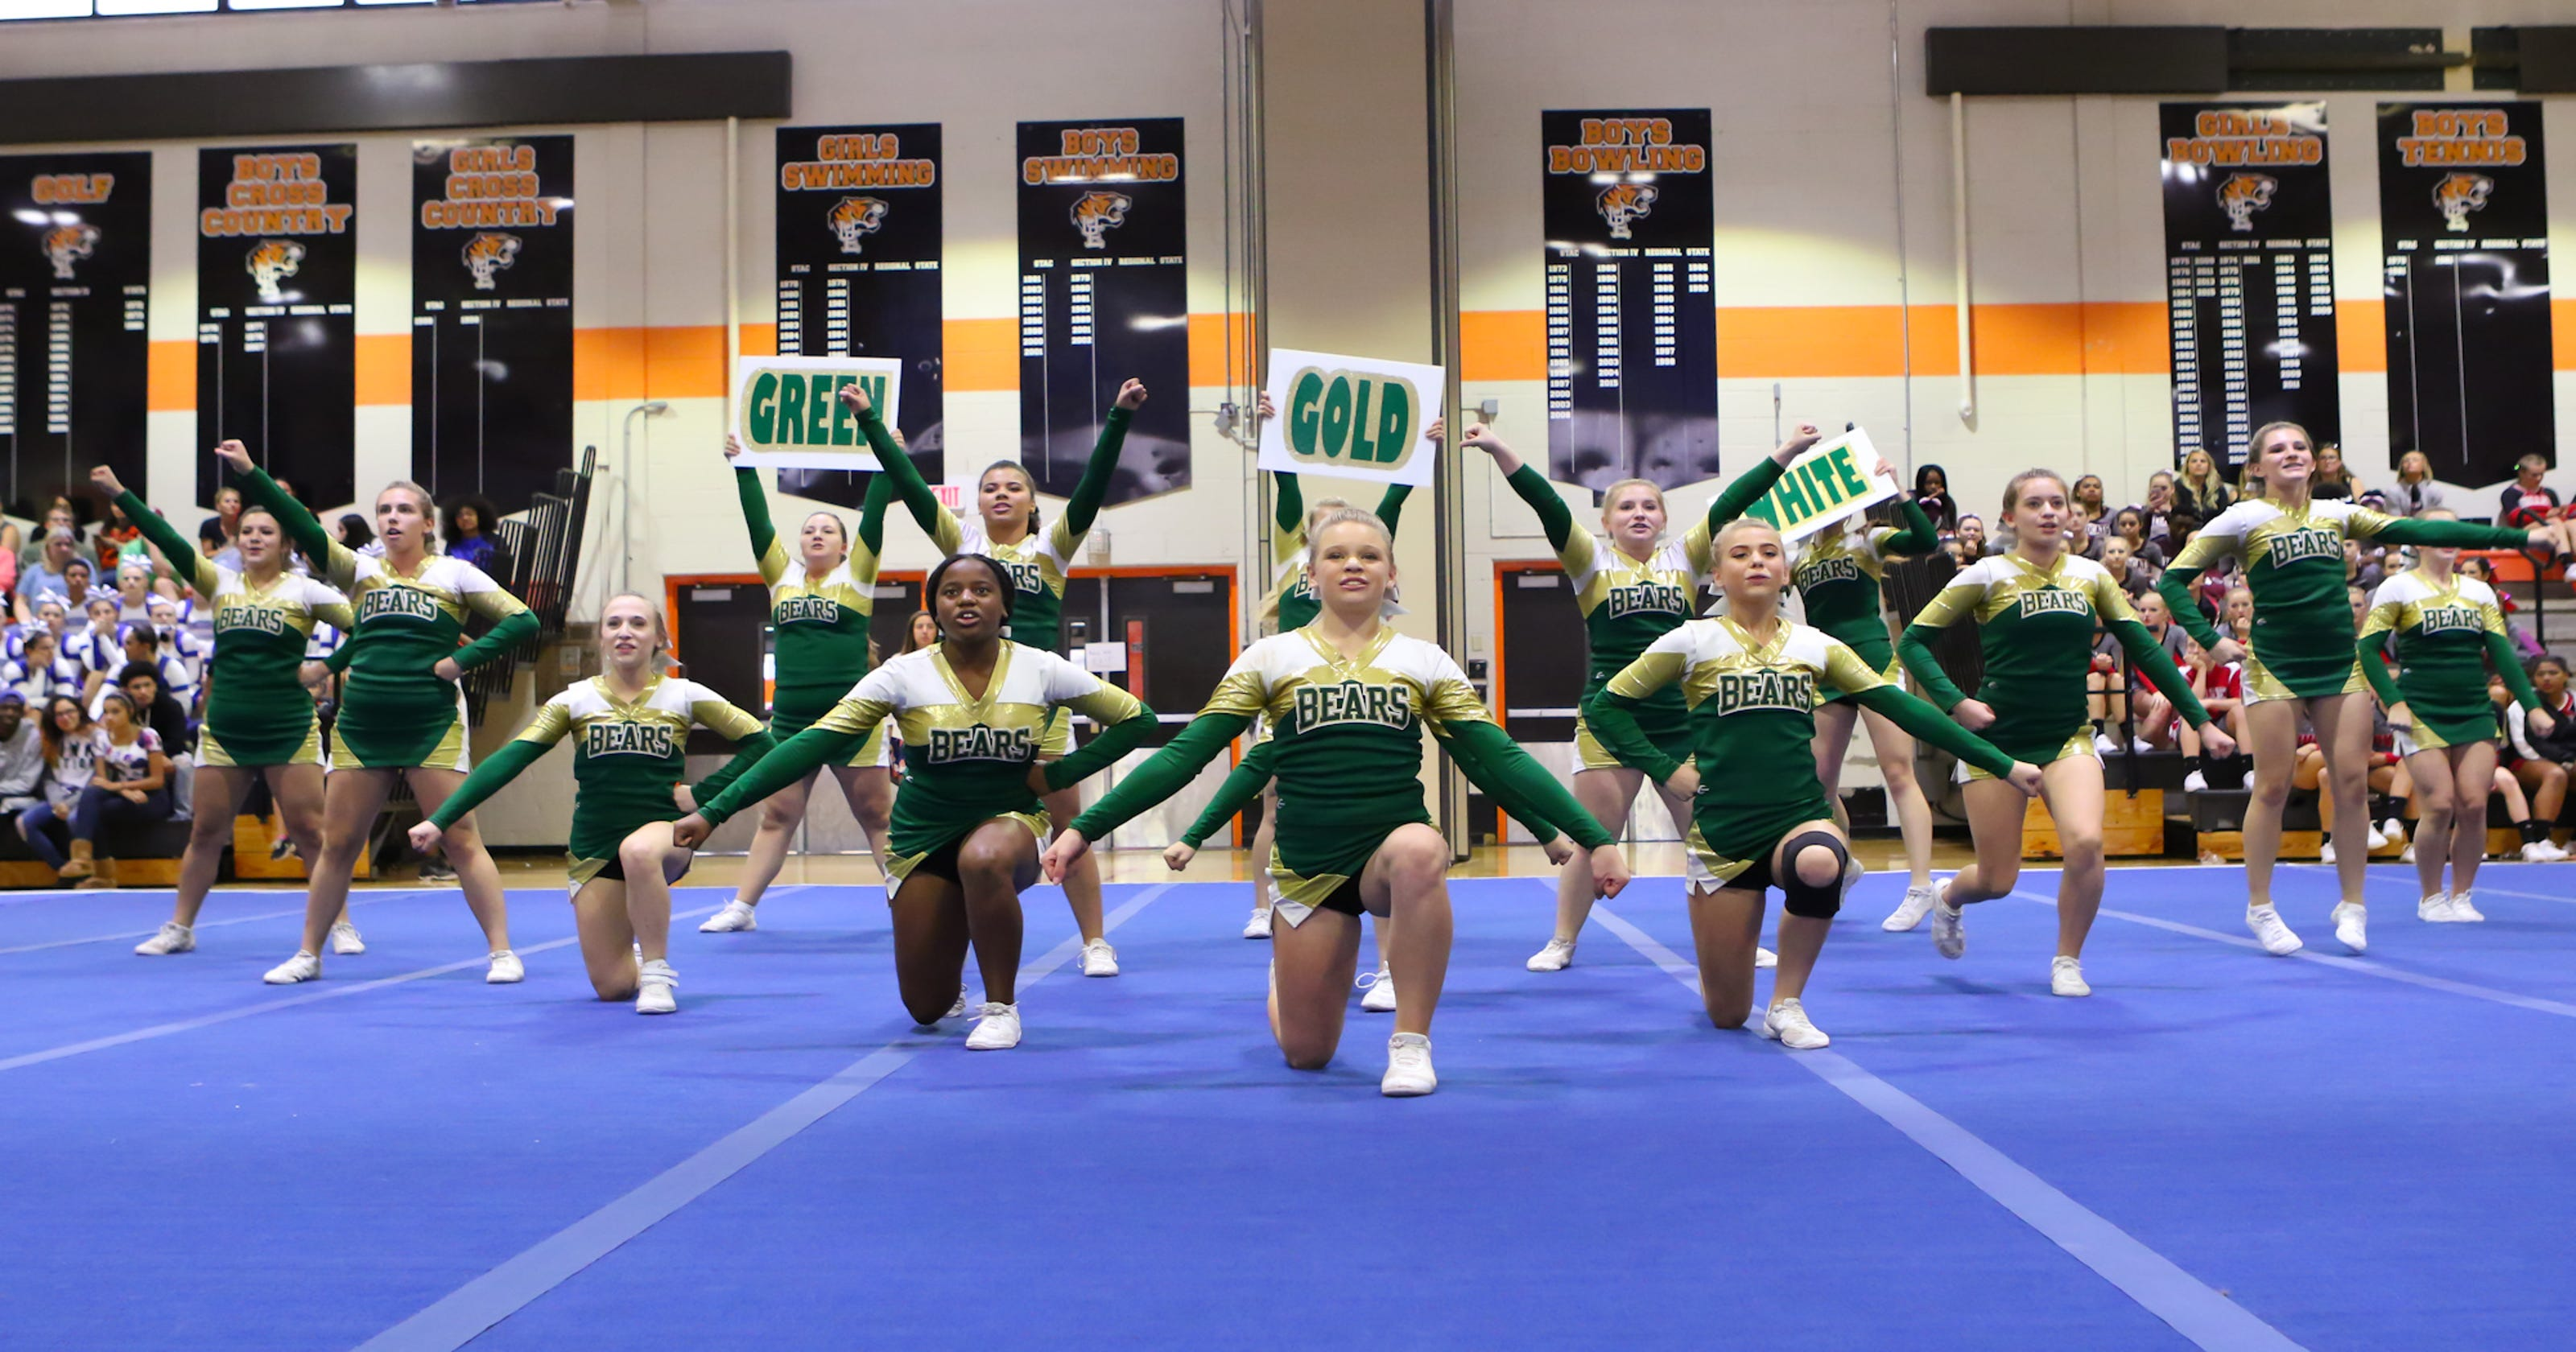 124205c7e57ed Cheerleaders more focused on competing than ever before